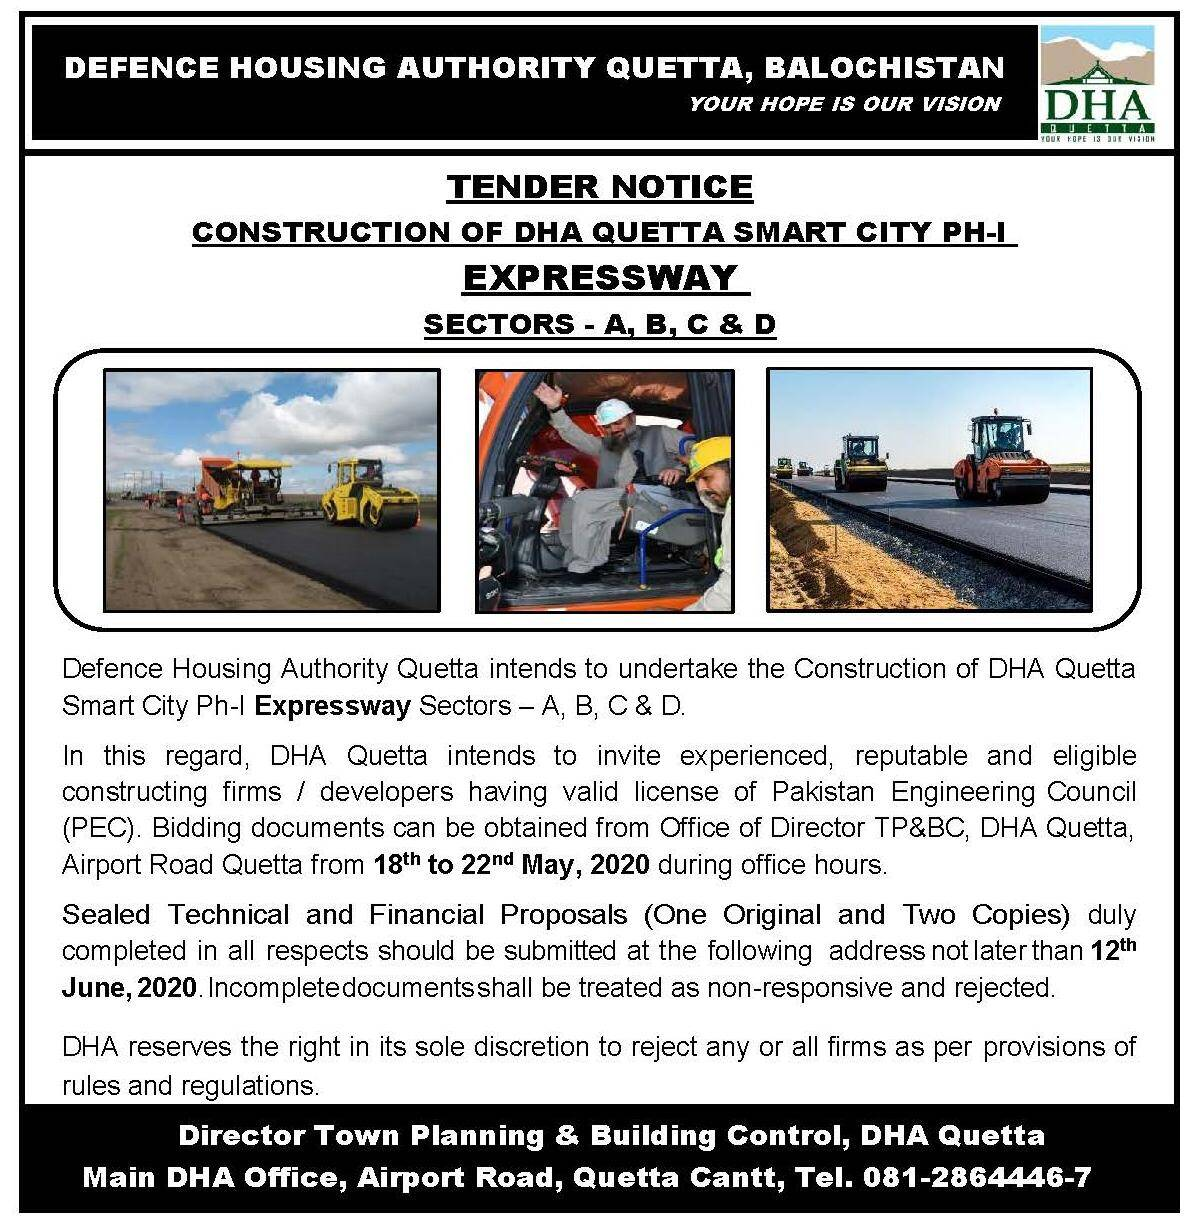 Tender for Construction of DHA Quetta Smart City Ph-I Expressway Sector A B C D